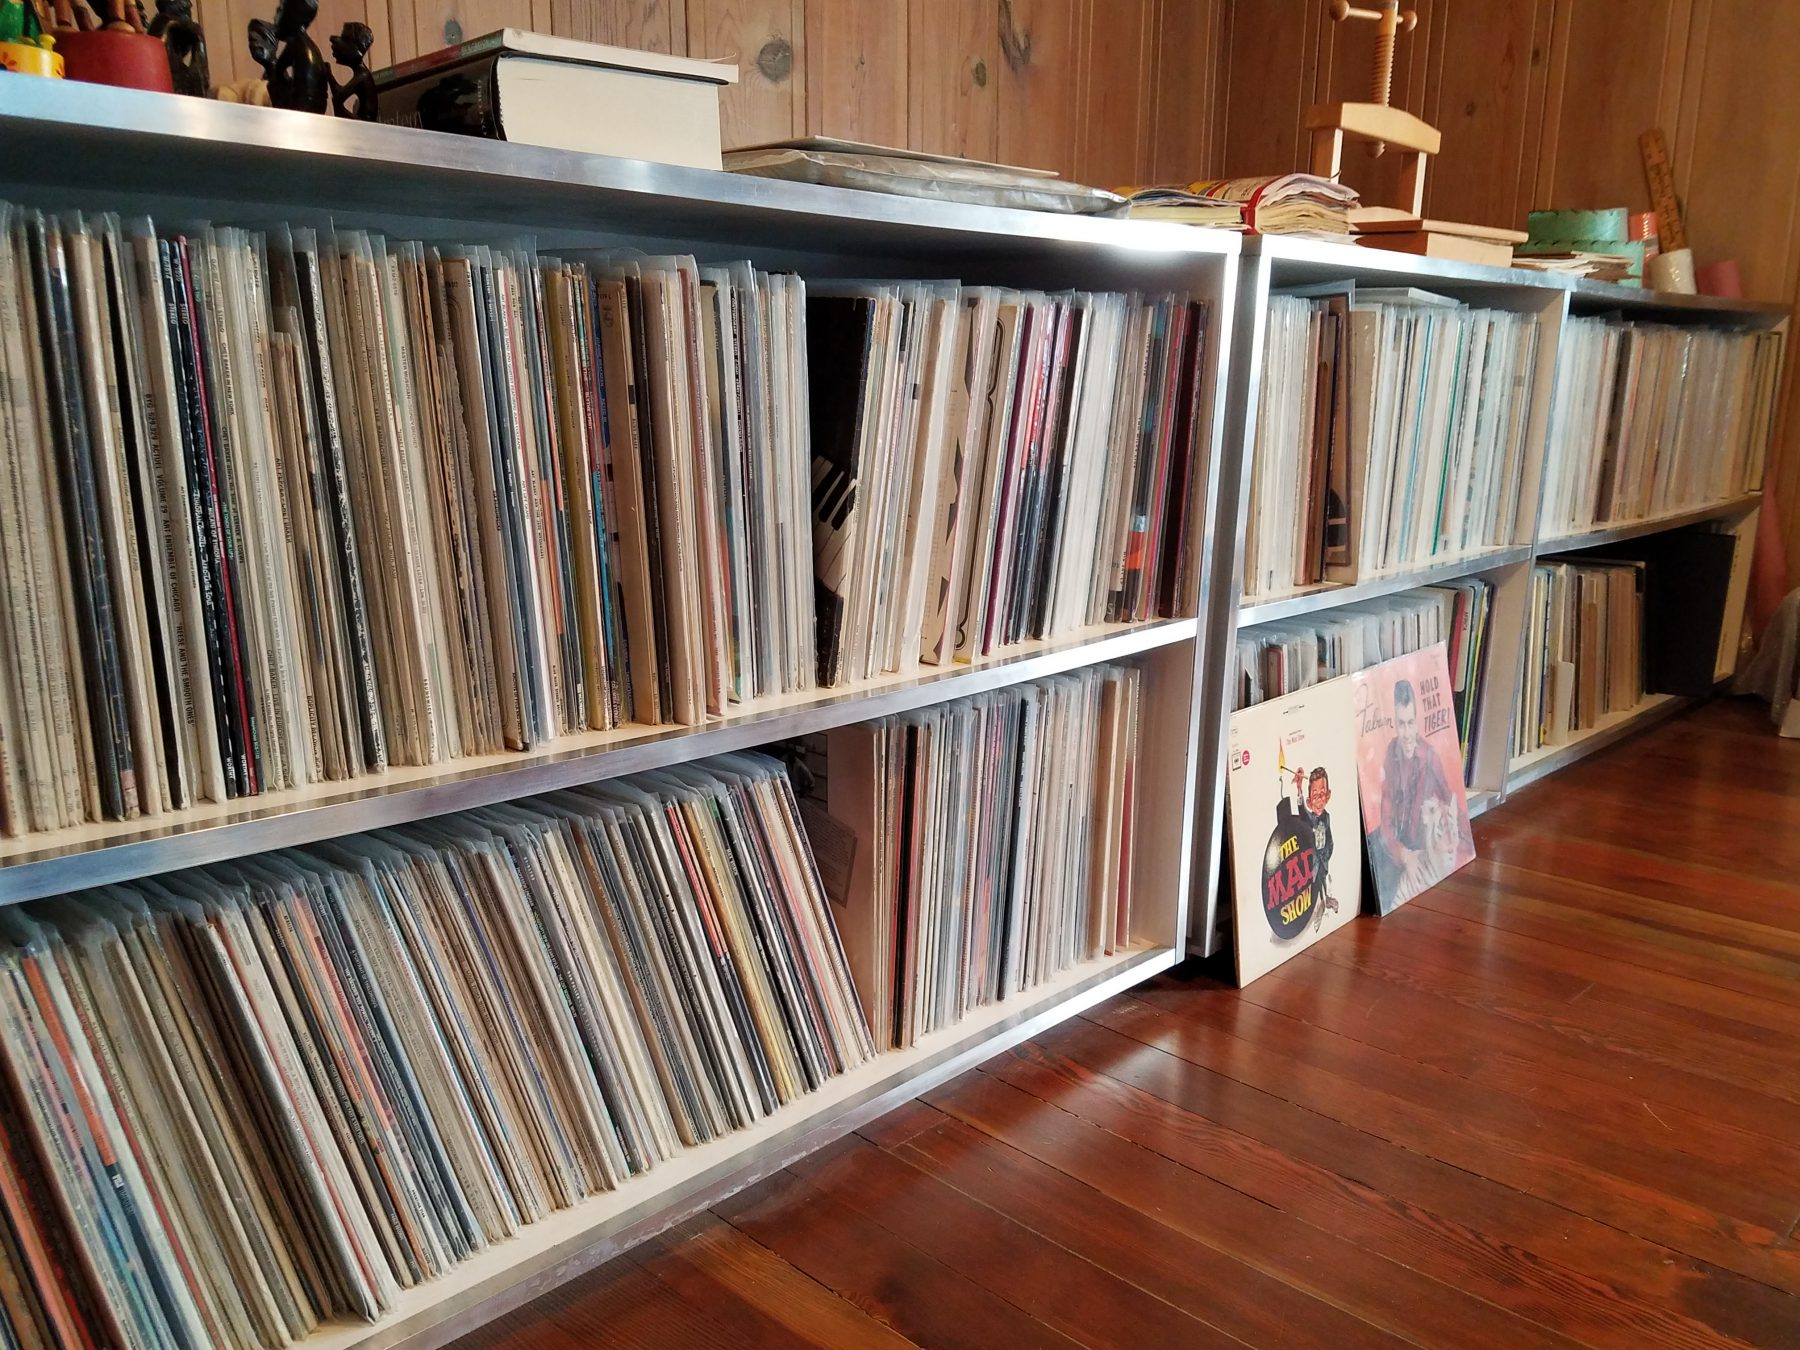 blog.eil.com readers share pics of their record collection………..